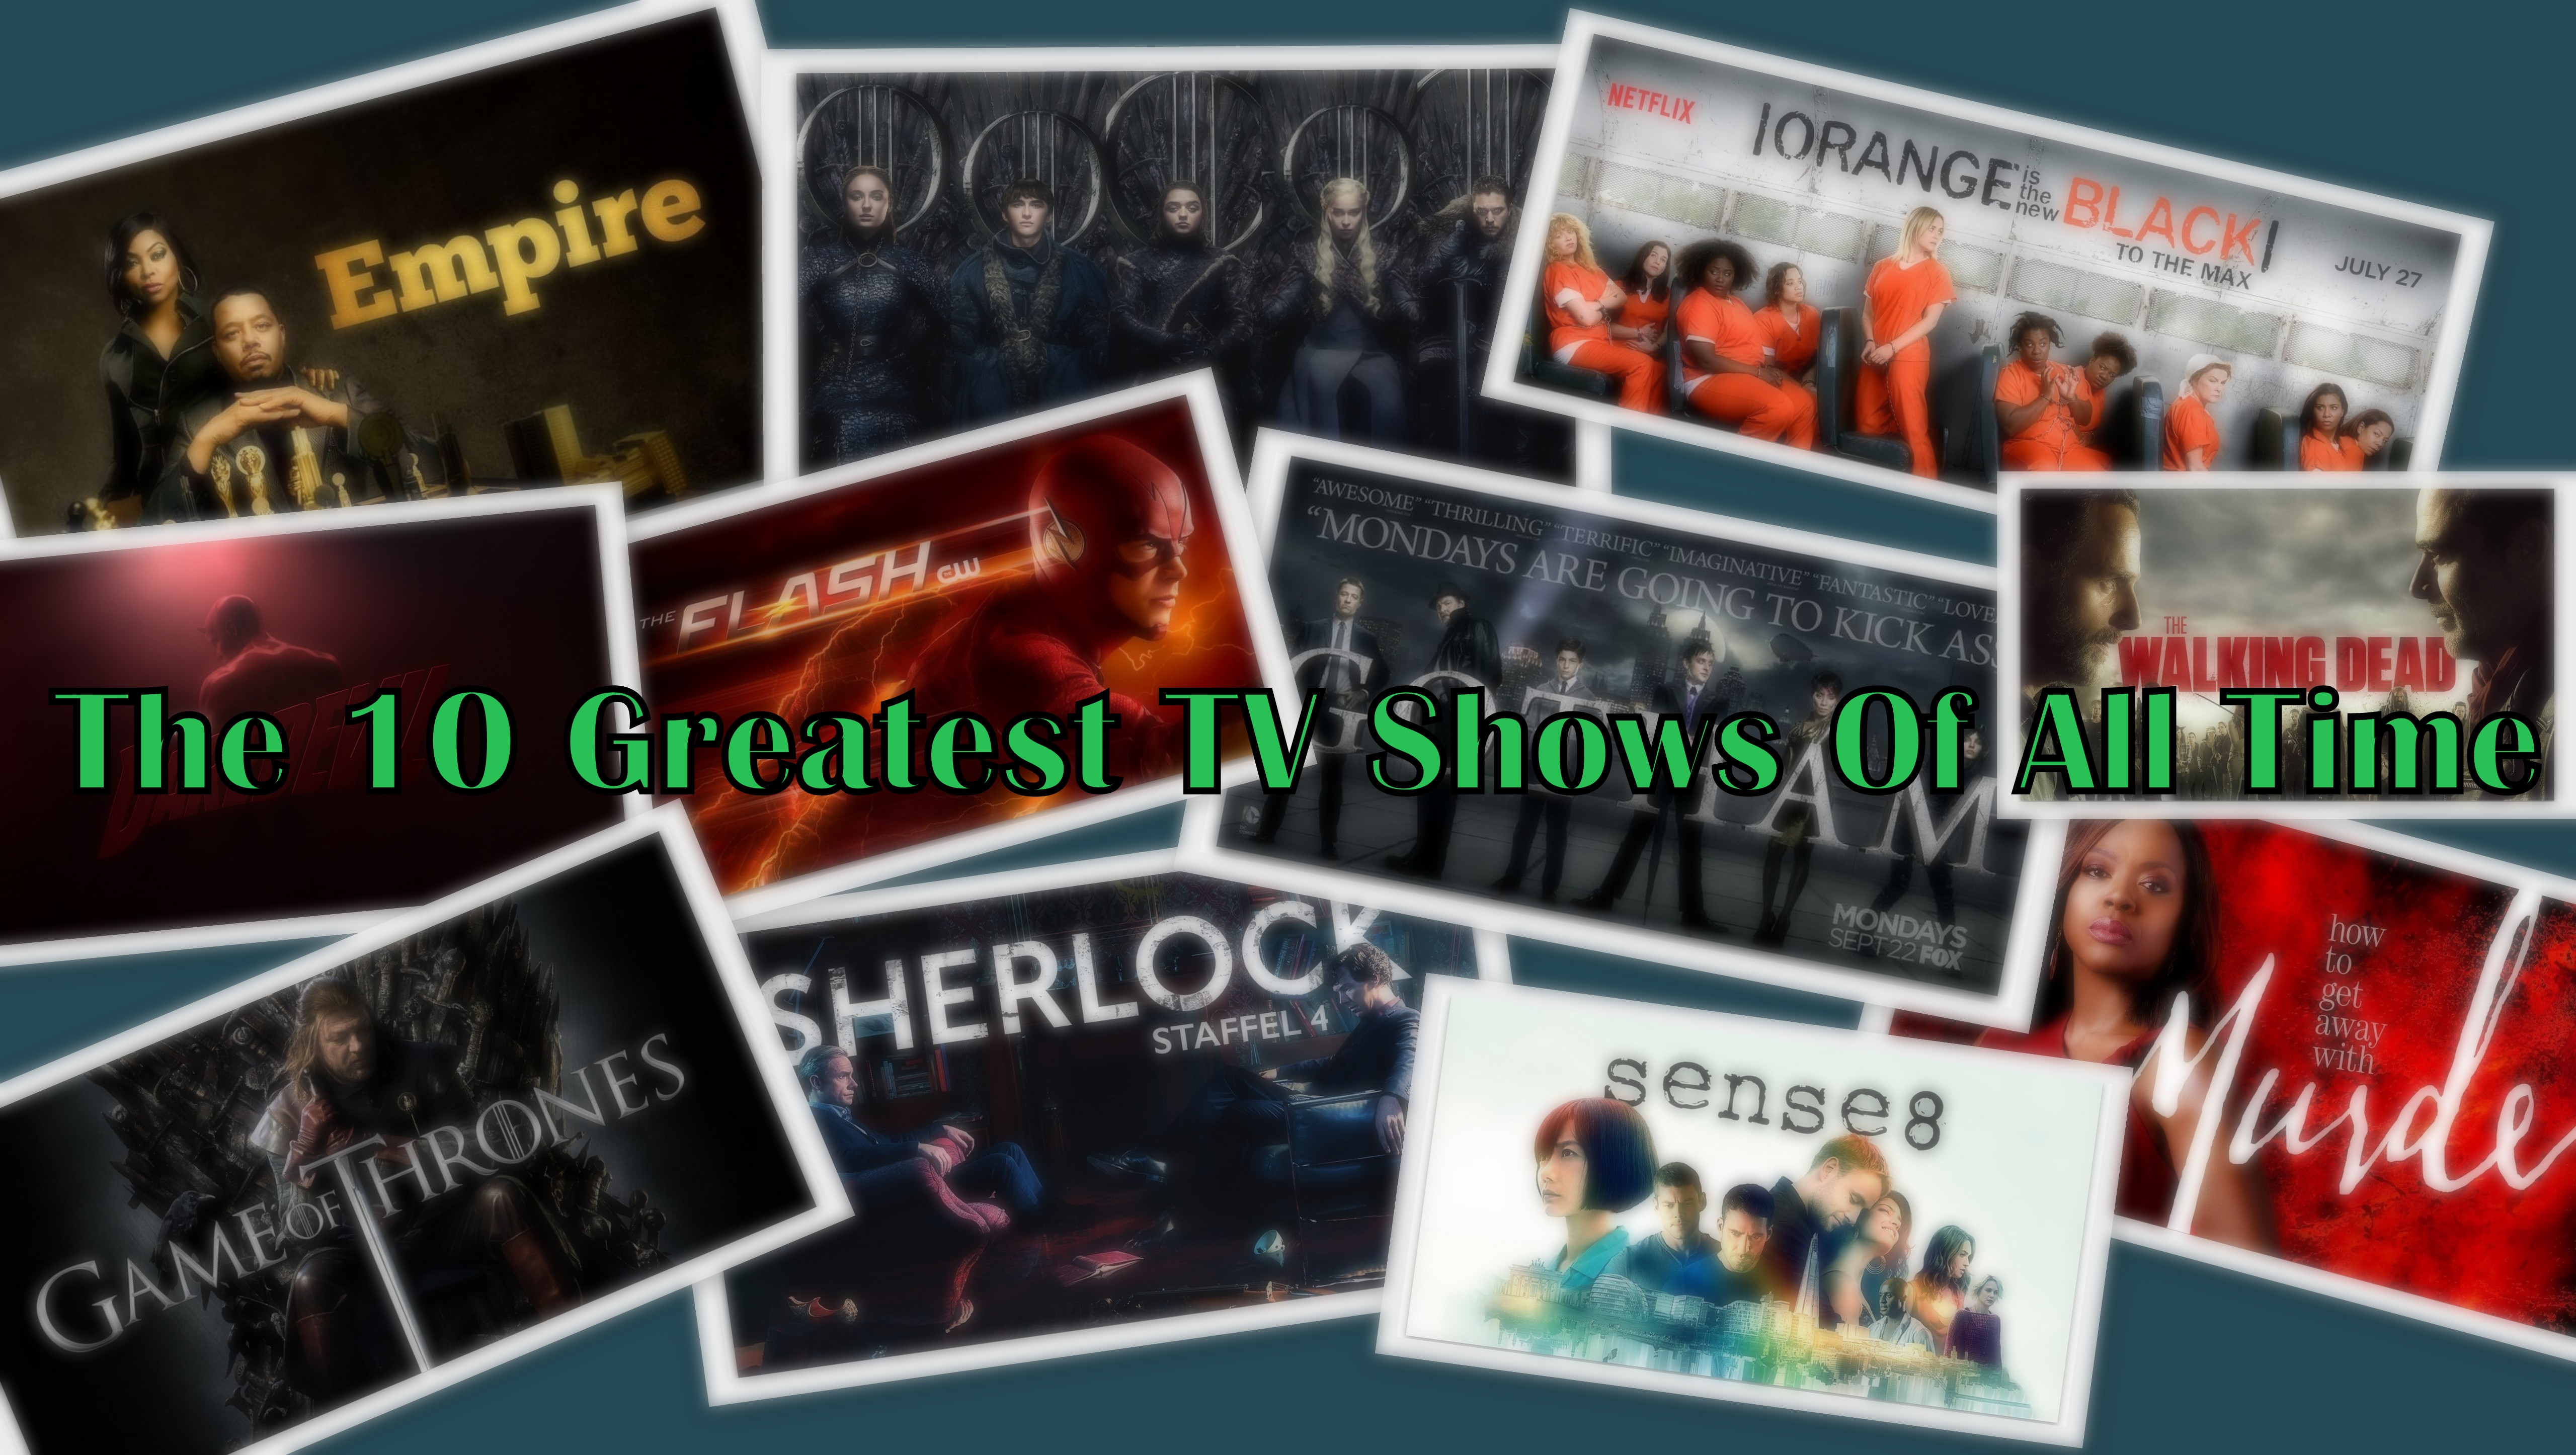 The 10 Greatest TV Shows Of All Time